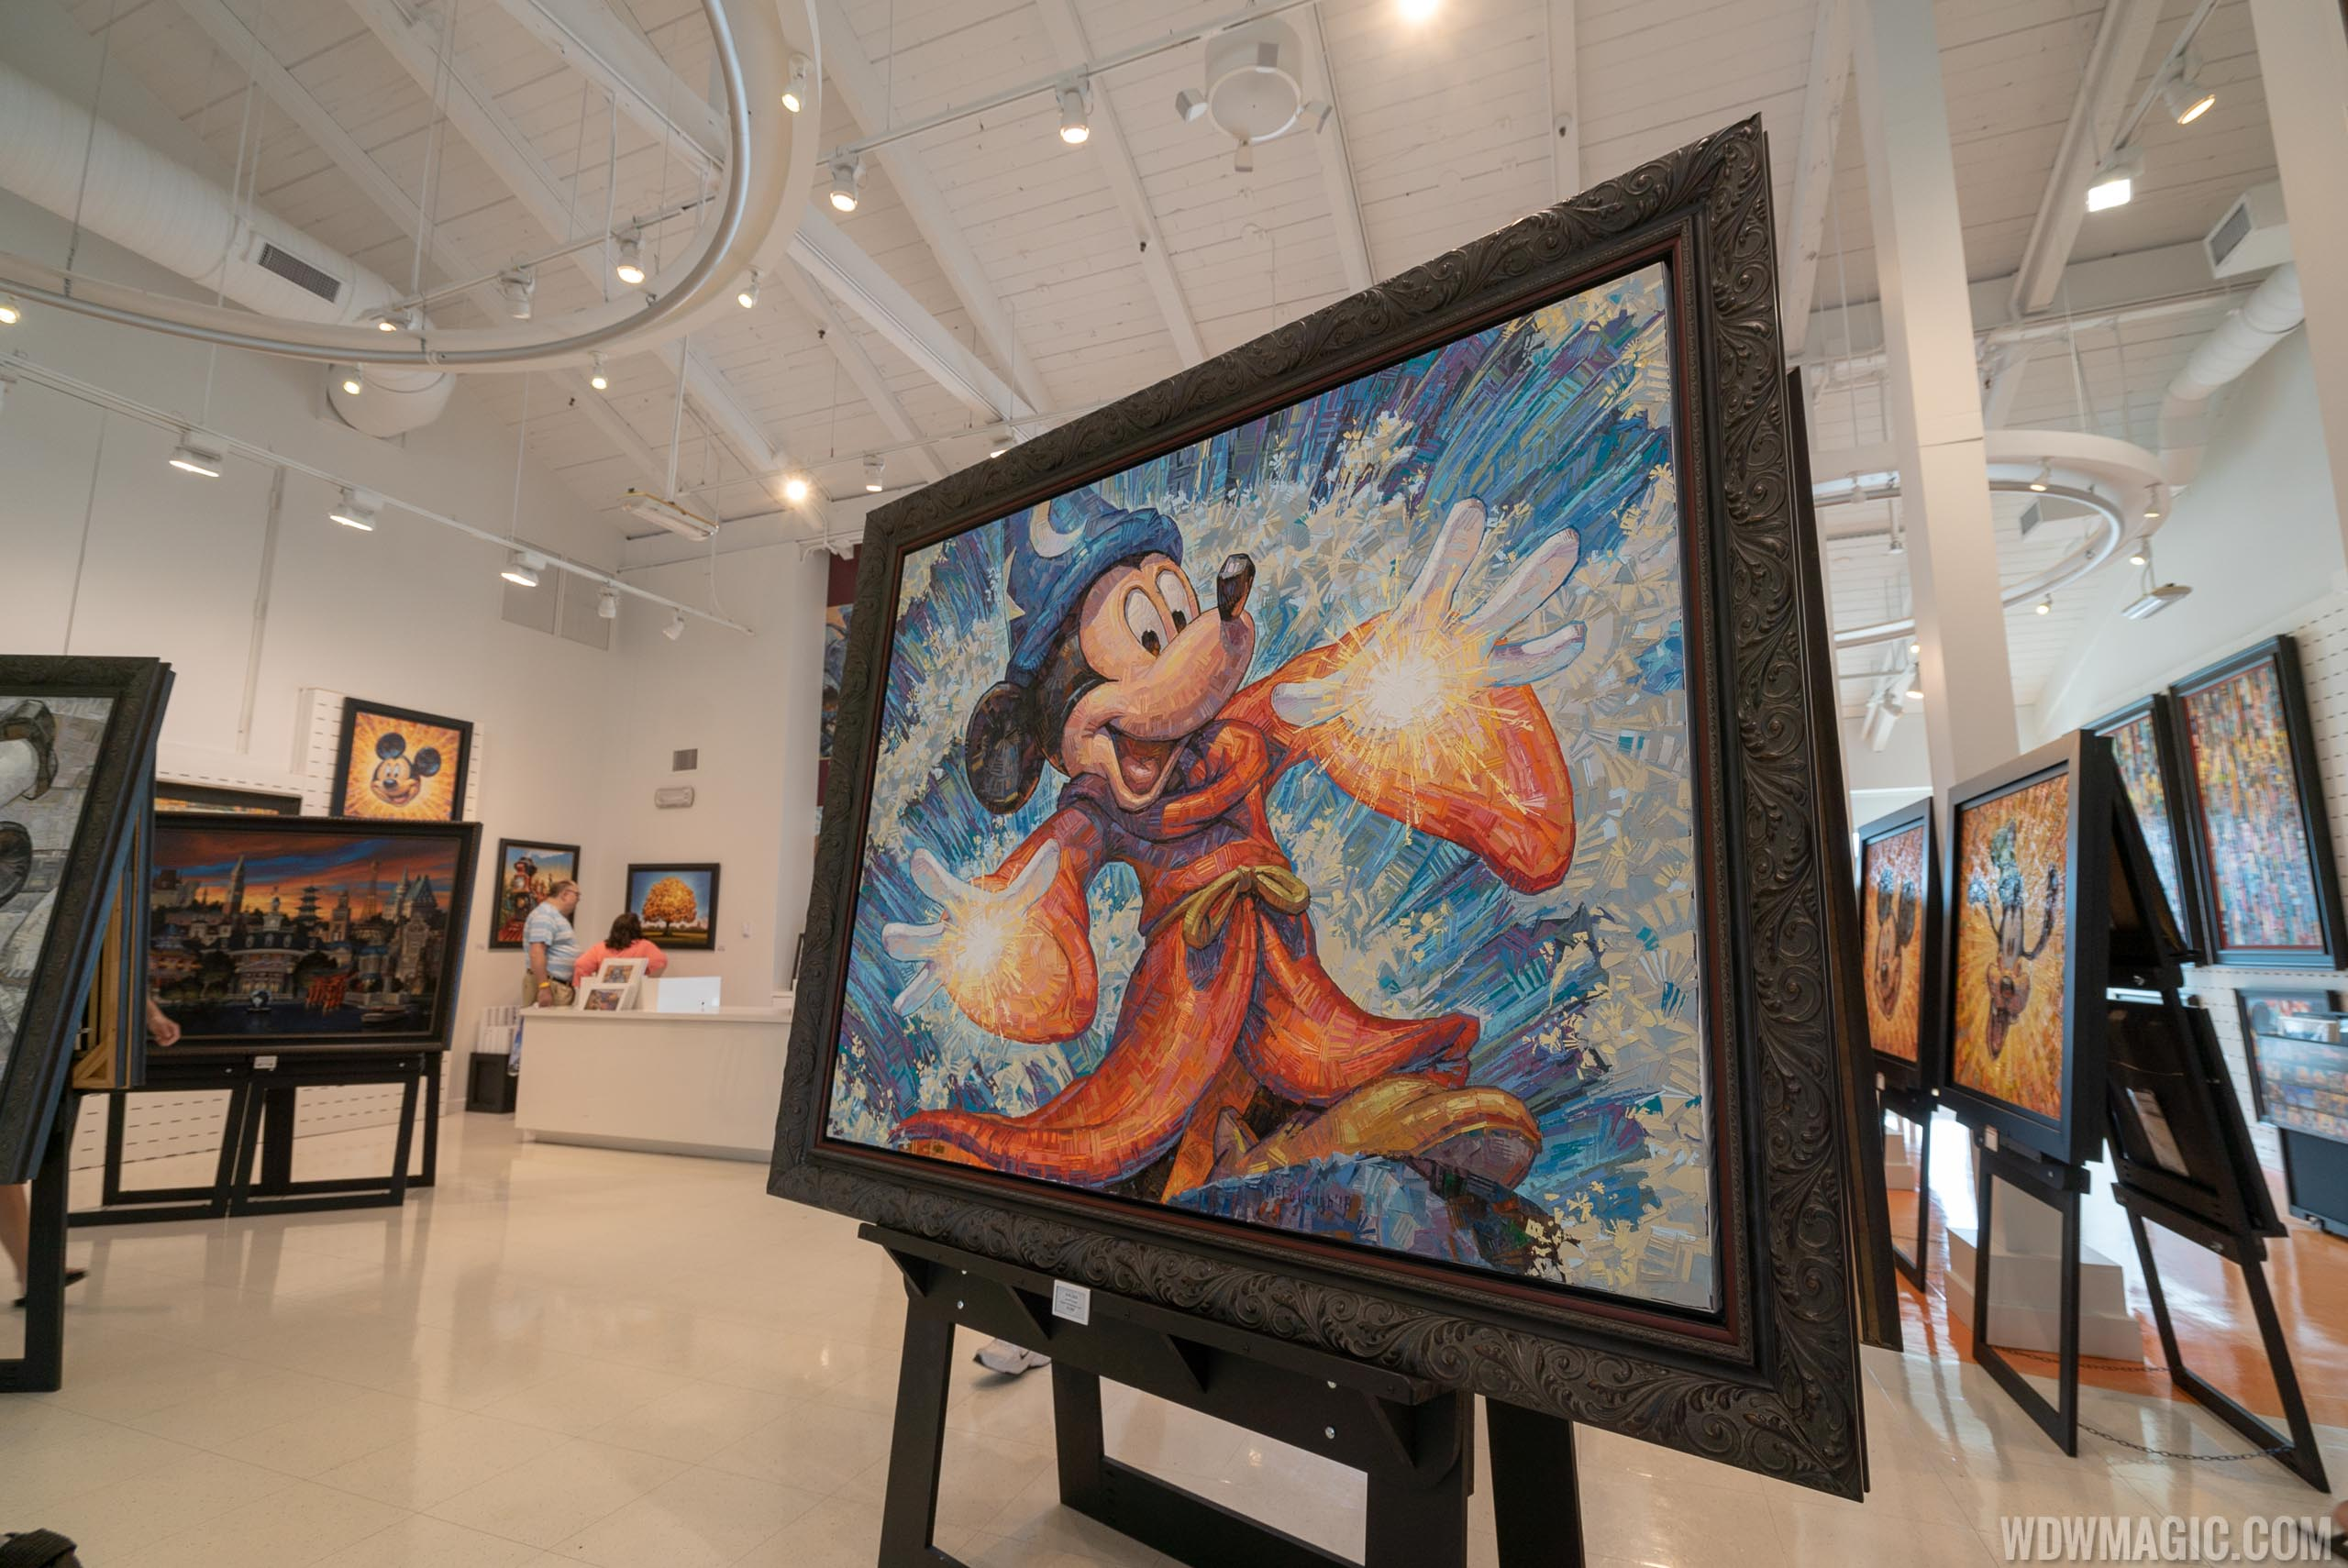 The Art of Disney Presents Greg McCullough overview